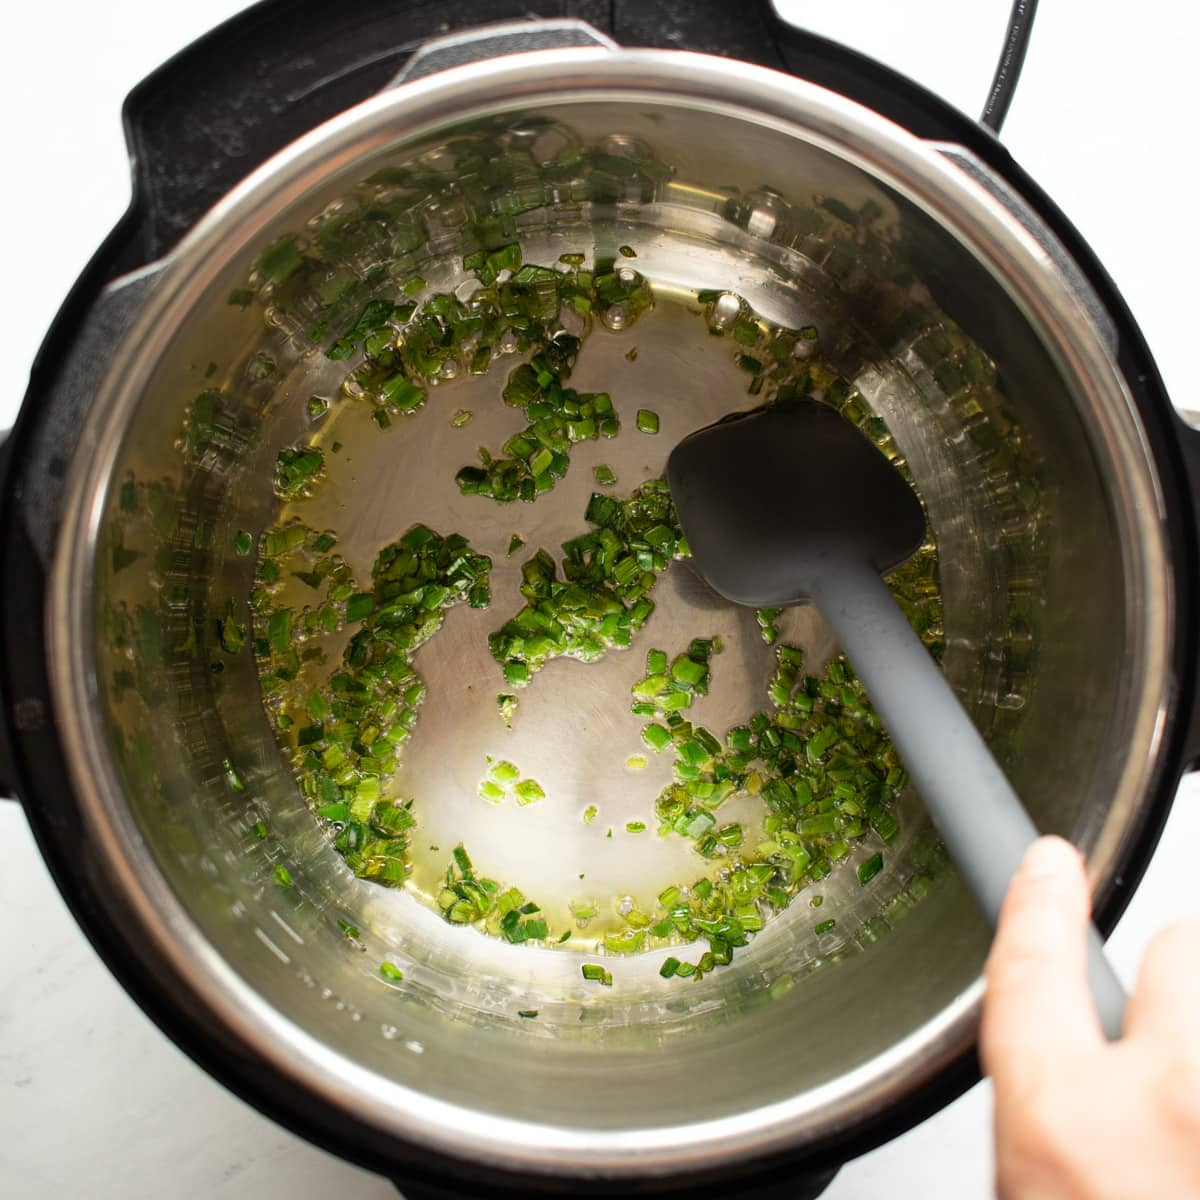 Sauteing chopped leek leaves in an Instant Pot